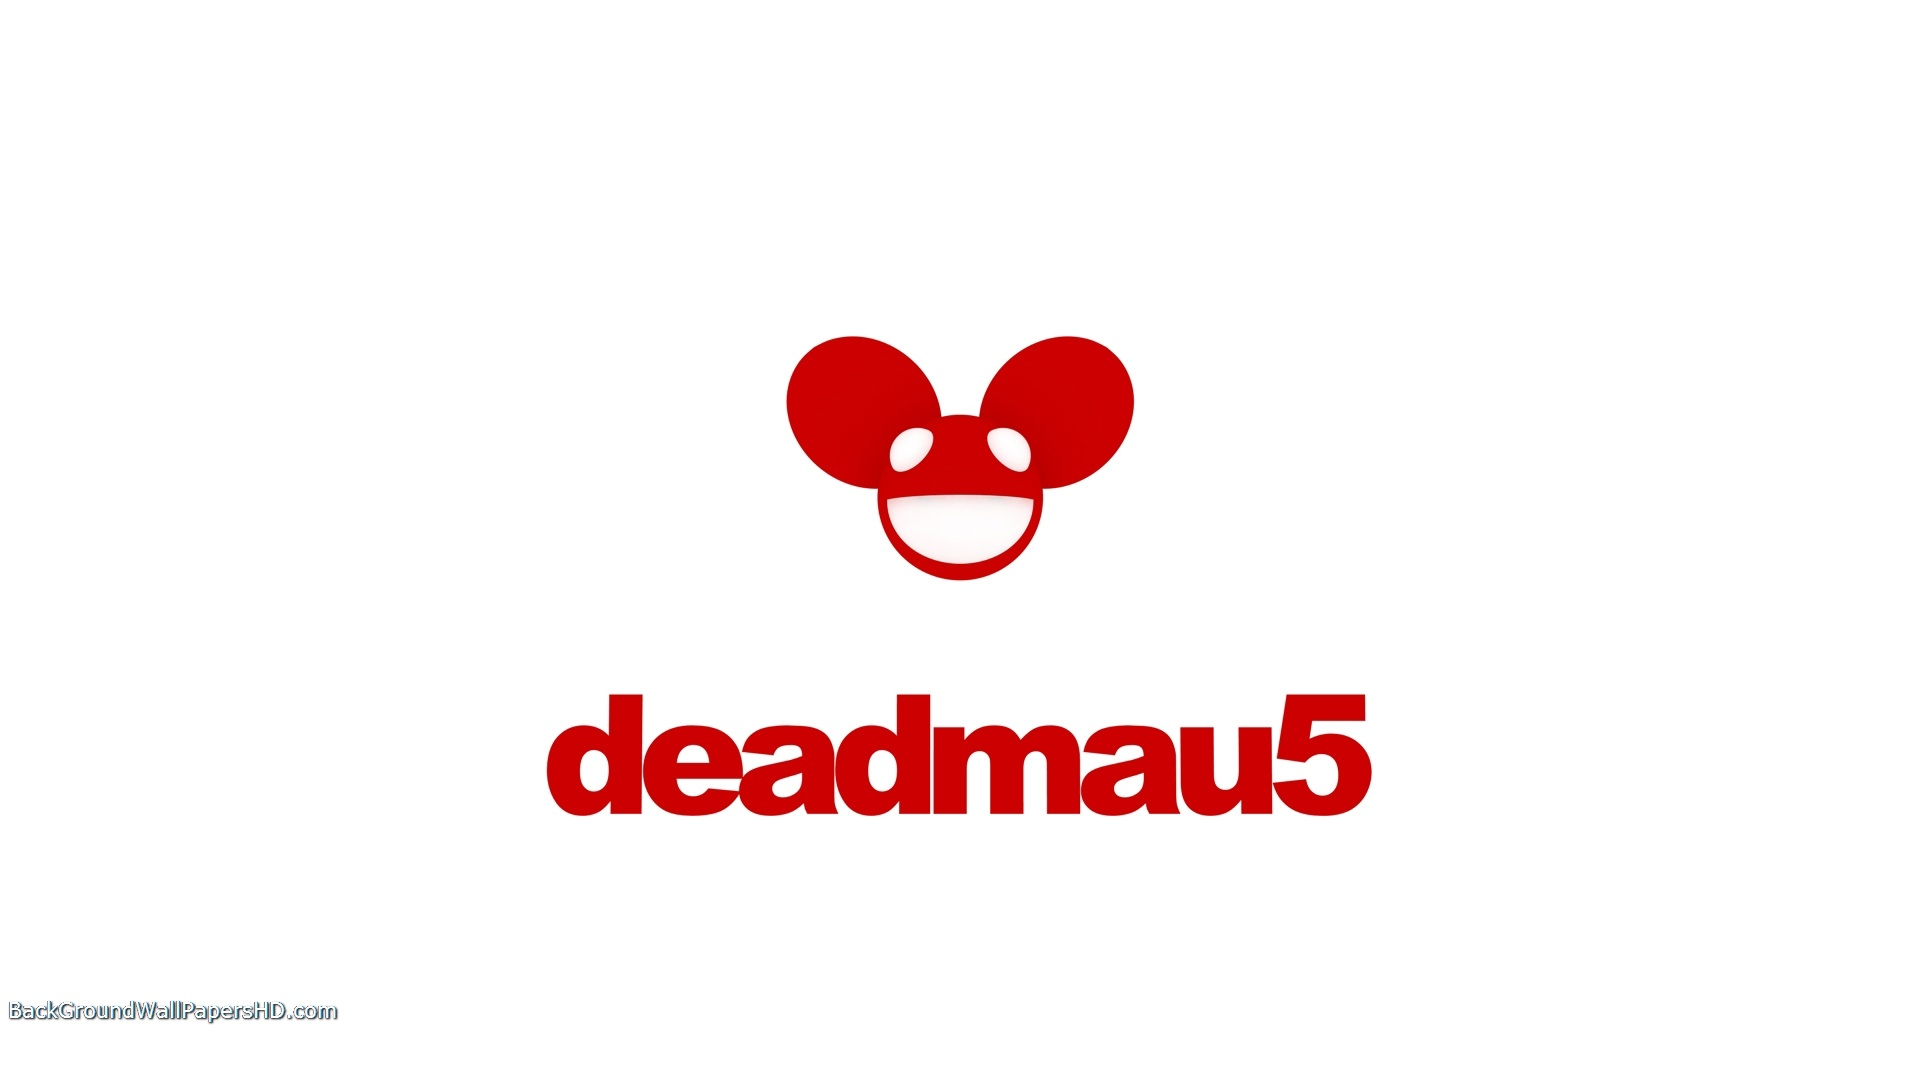 deadmau5 logo 1920x1080 wallpaper 10211 Deadmau5 Logo HD Wallpaper